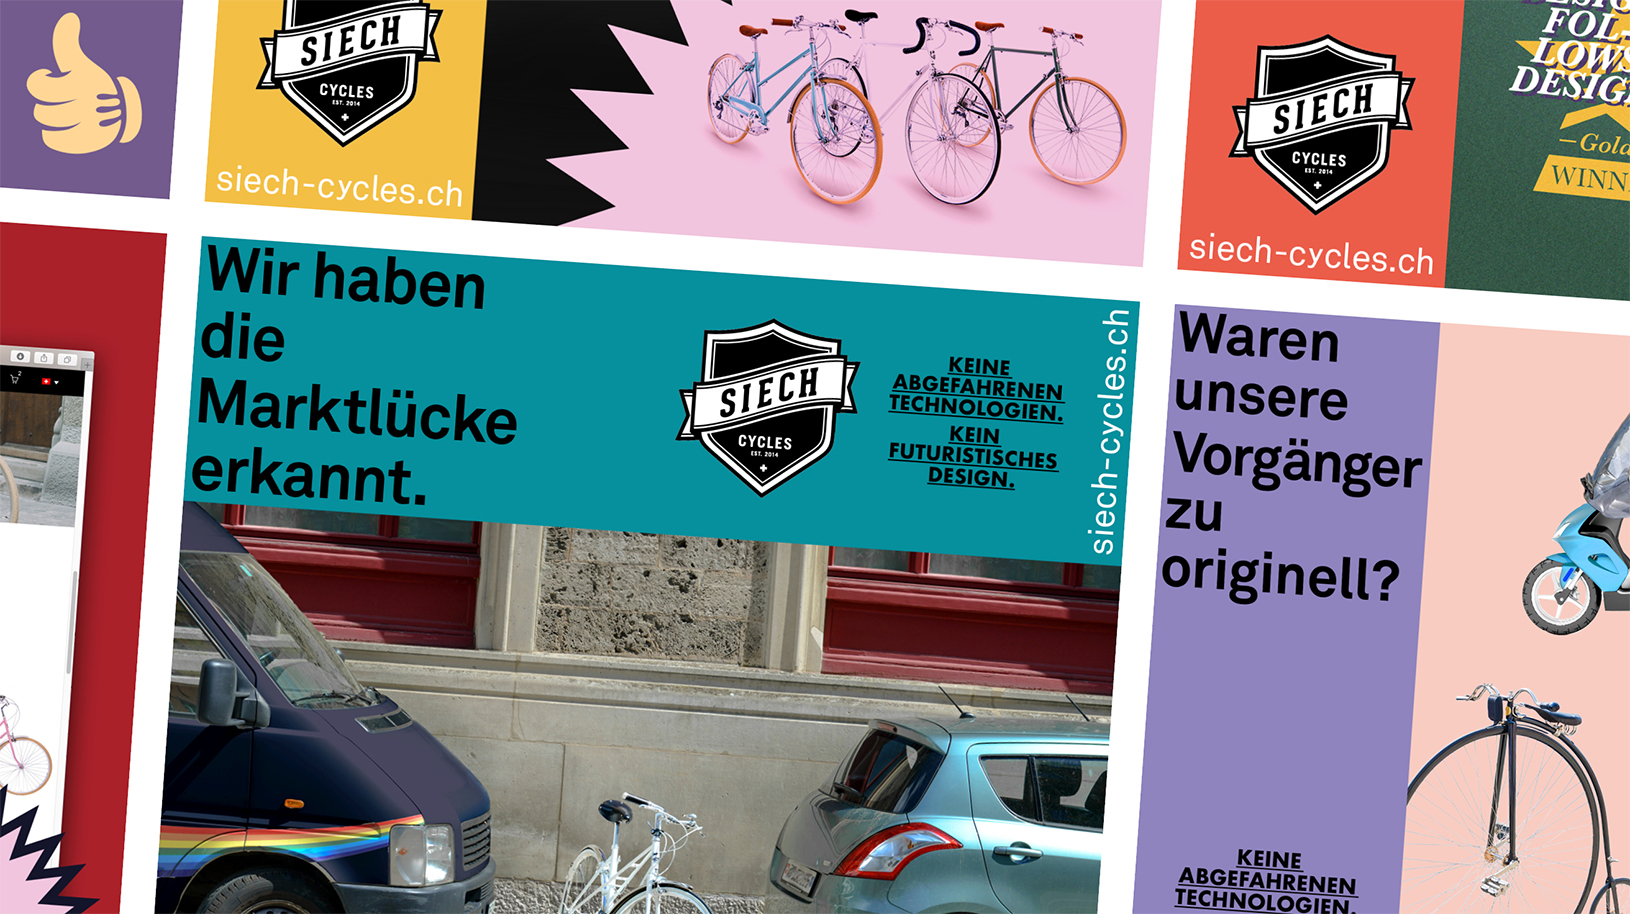 Advertising for our favourite client Siech Cycles -